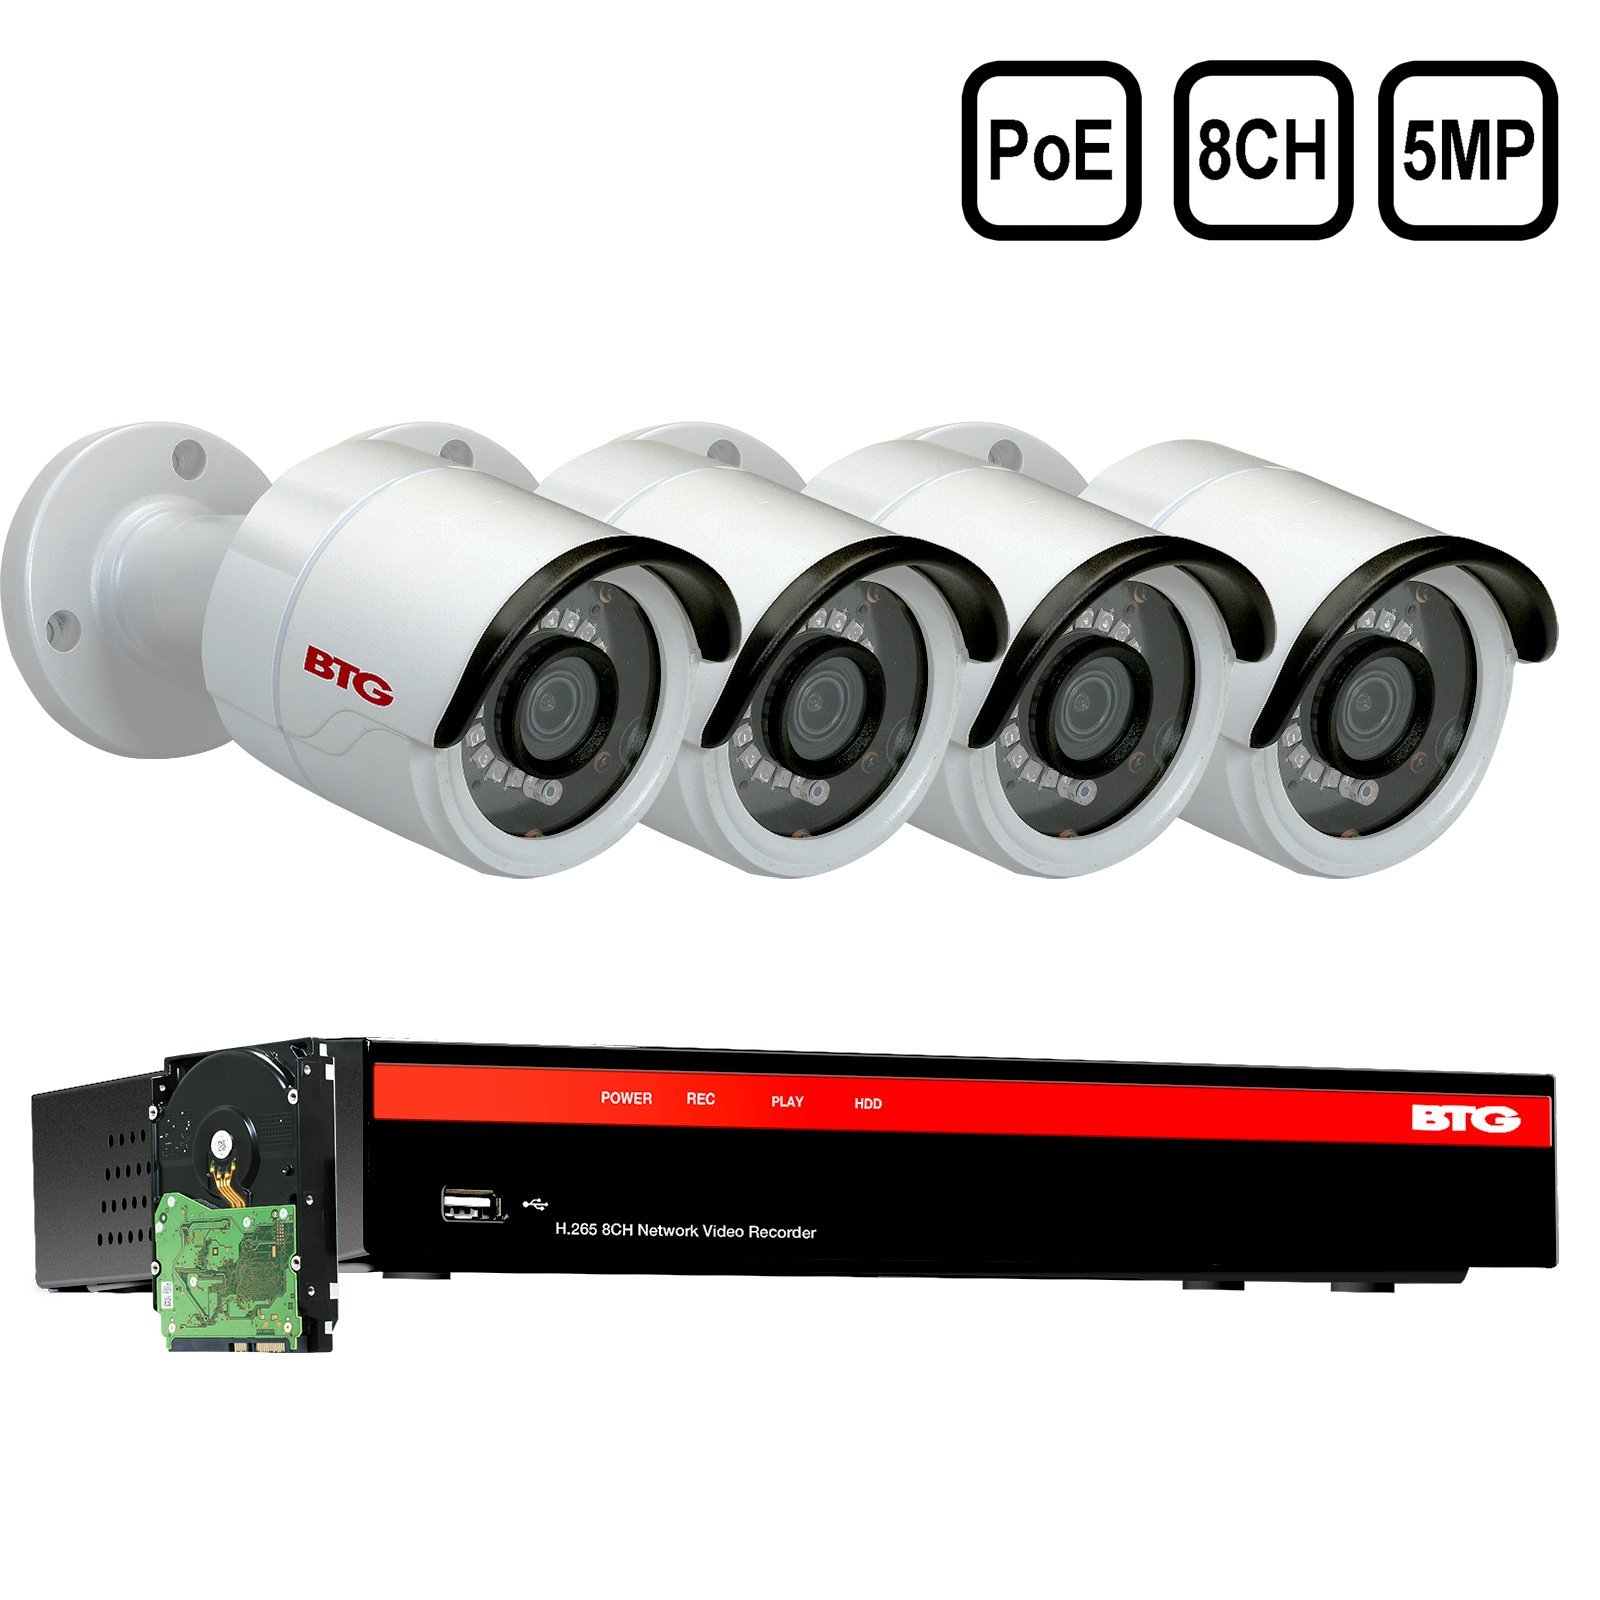 BTG 8CH 5MP 4 Cameras Poe Security Camera System 4K NVR Built-in PoE with Outdoor 5MP Surveillance IP PoE 4 3.6mm Bullet Cameras HD 2592 x 1944 IR CCTV System H265 1TB HDD by BTG Security